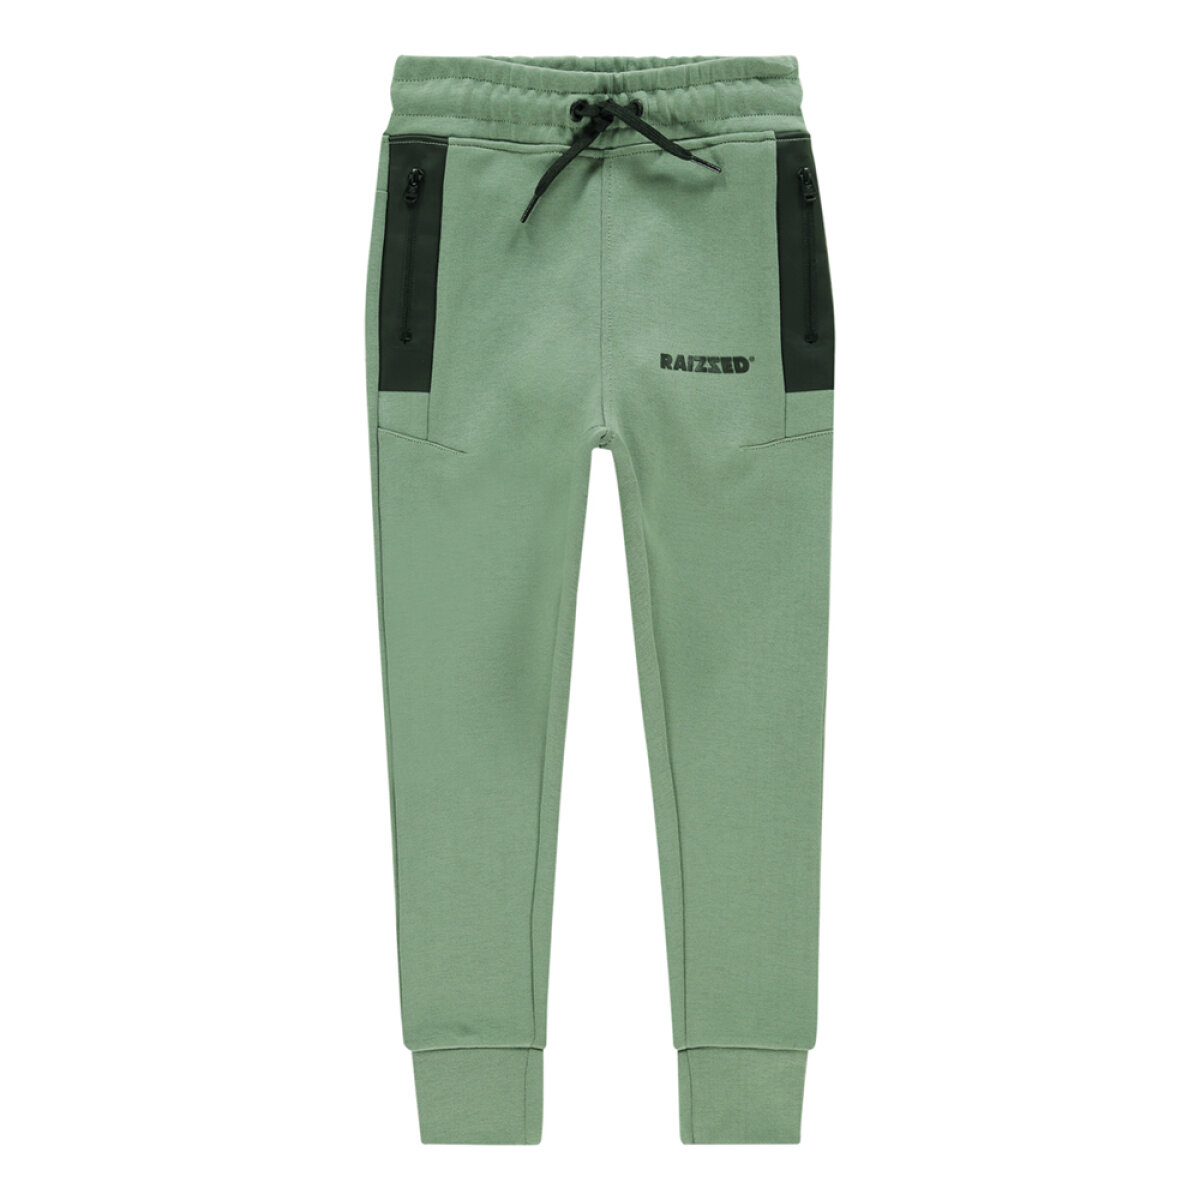 Raizzed jongens sweatpants Seattle groen